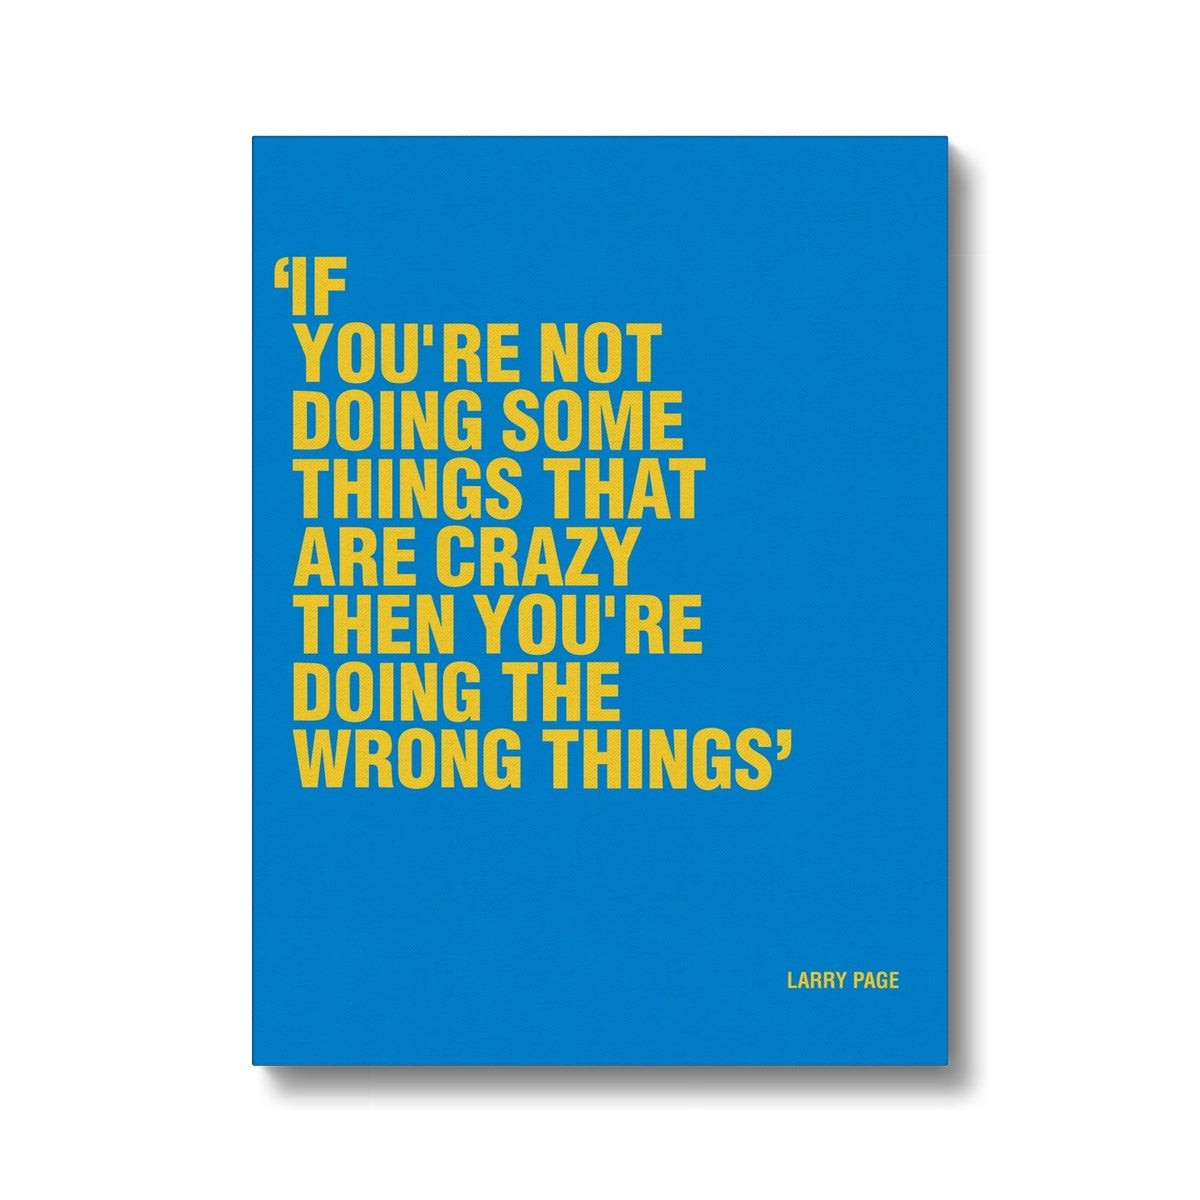 Motivational canvas prints inspired by Google founder Larry Page. Artwork for office walls.